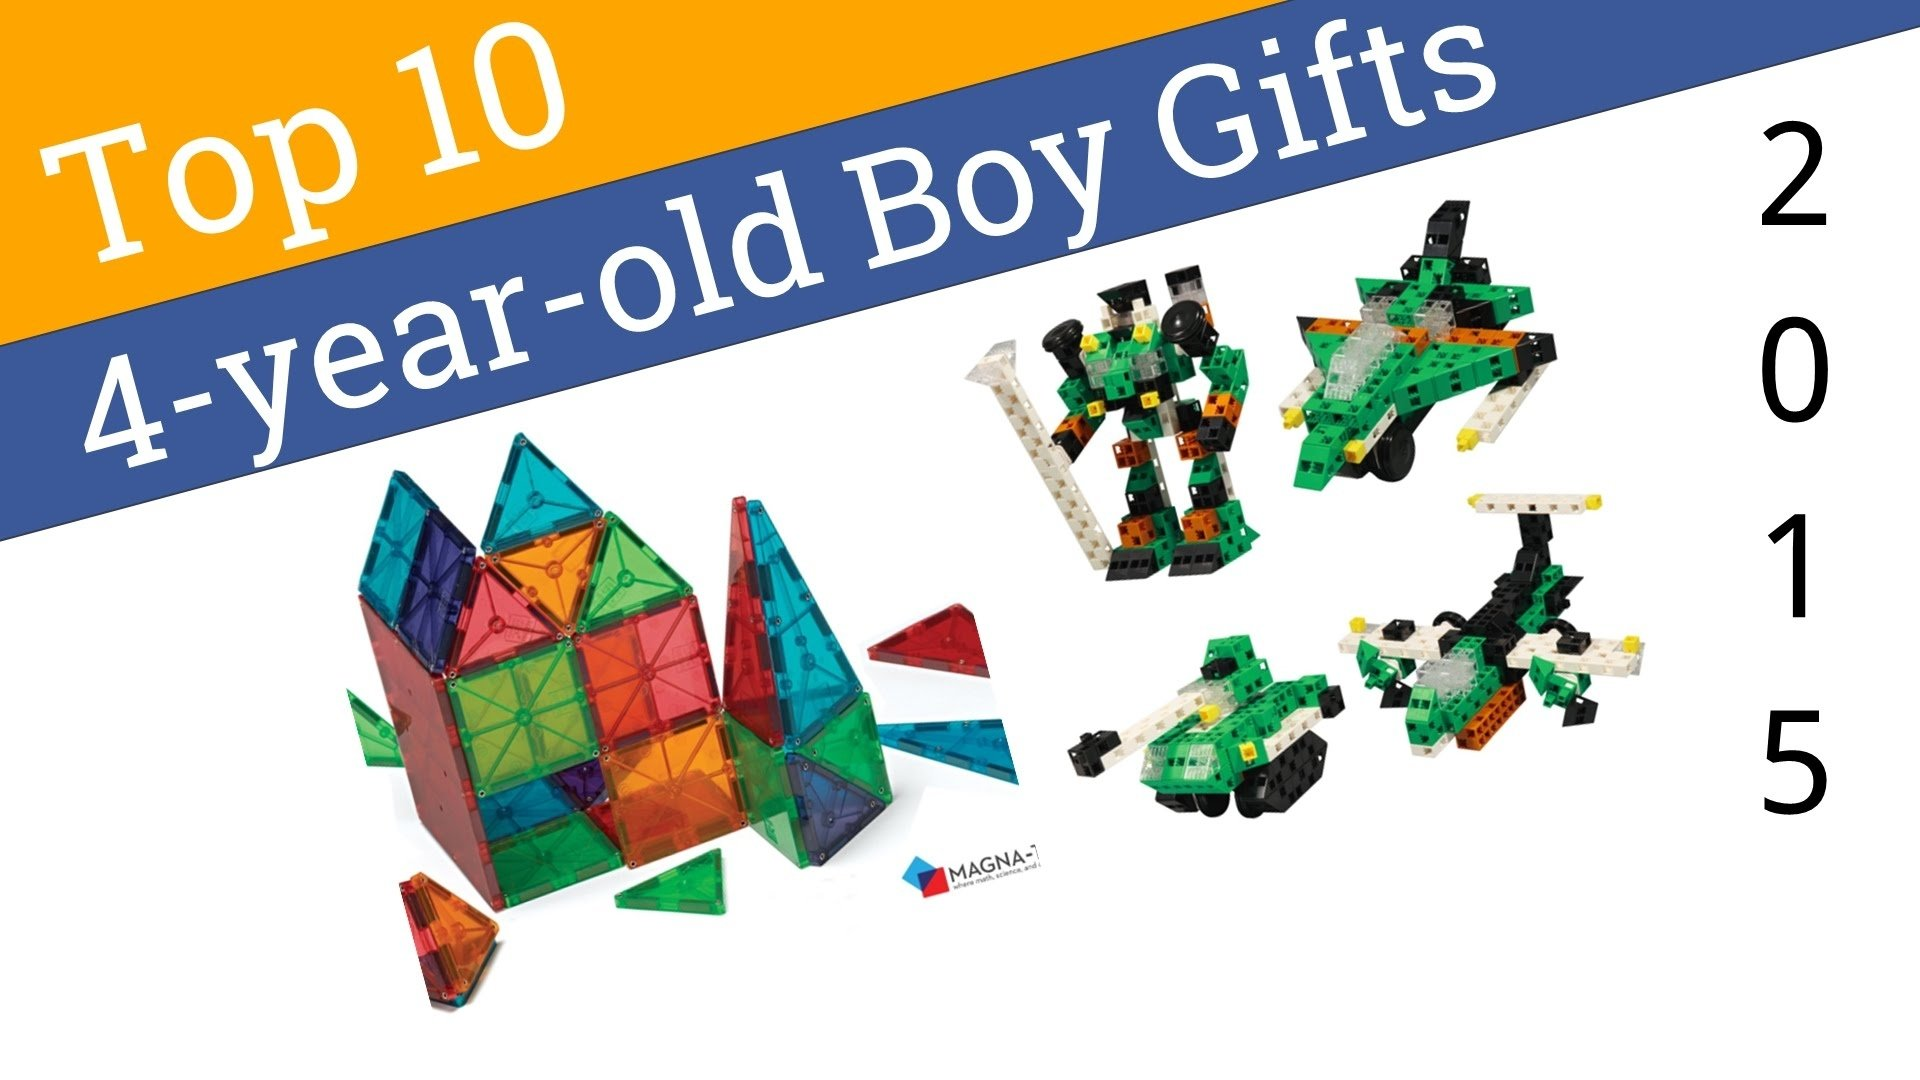 10 Trendy 4 Year Old Boy Gift Ideas 10 best gifts for 4 year old boys 2015 youtube 2 2020